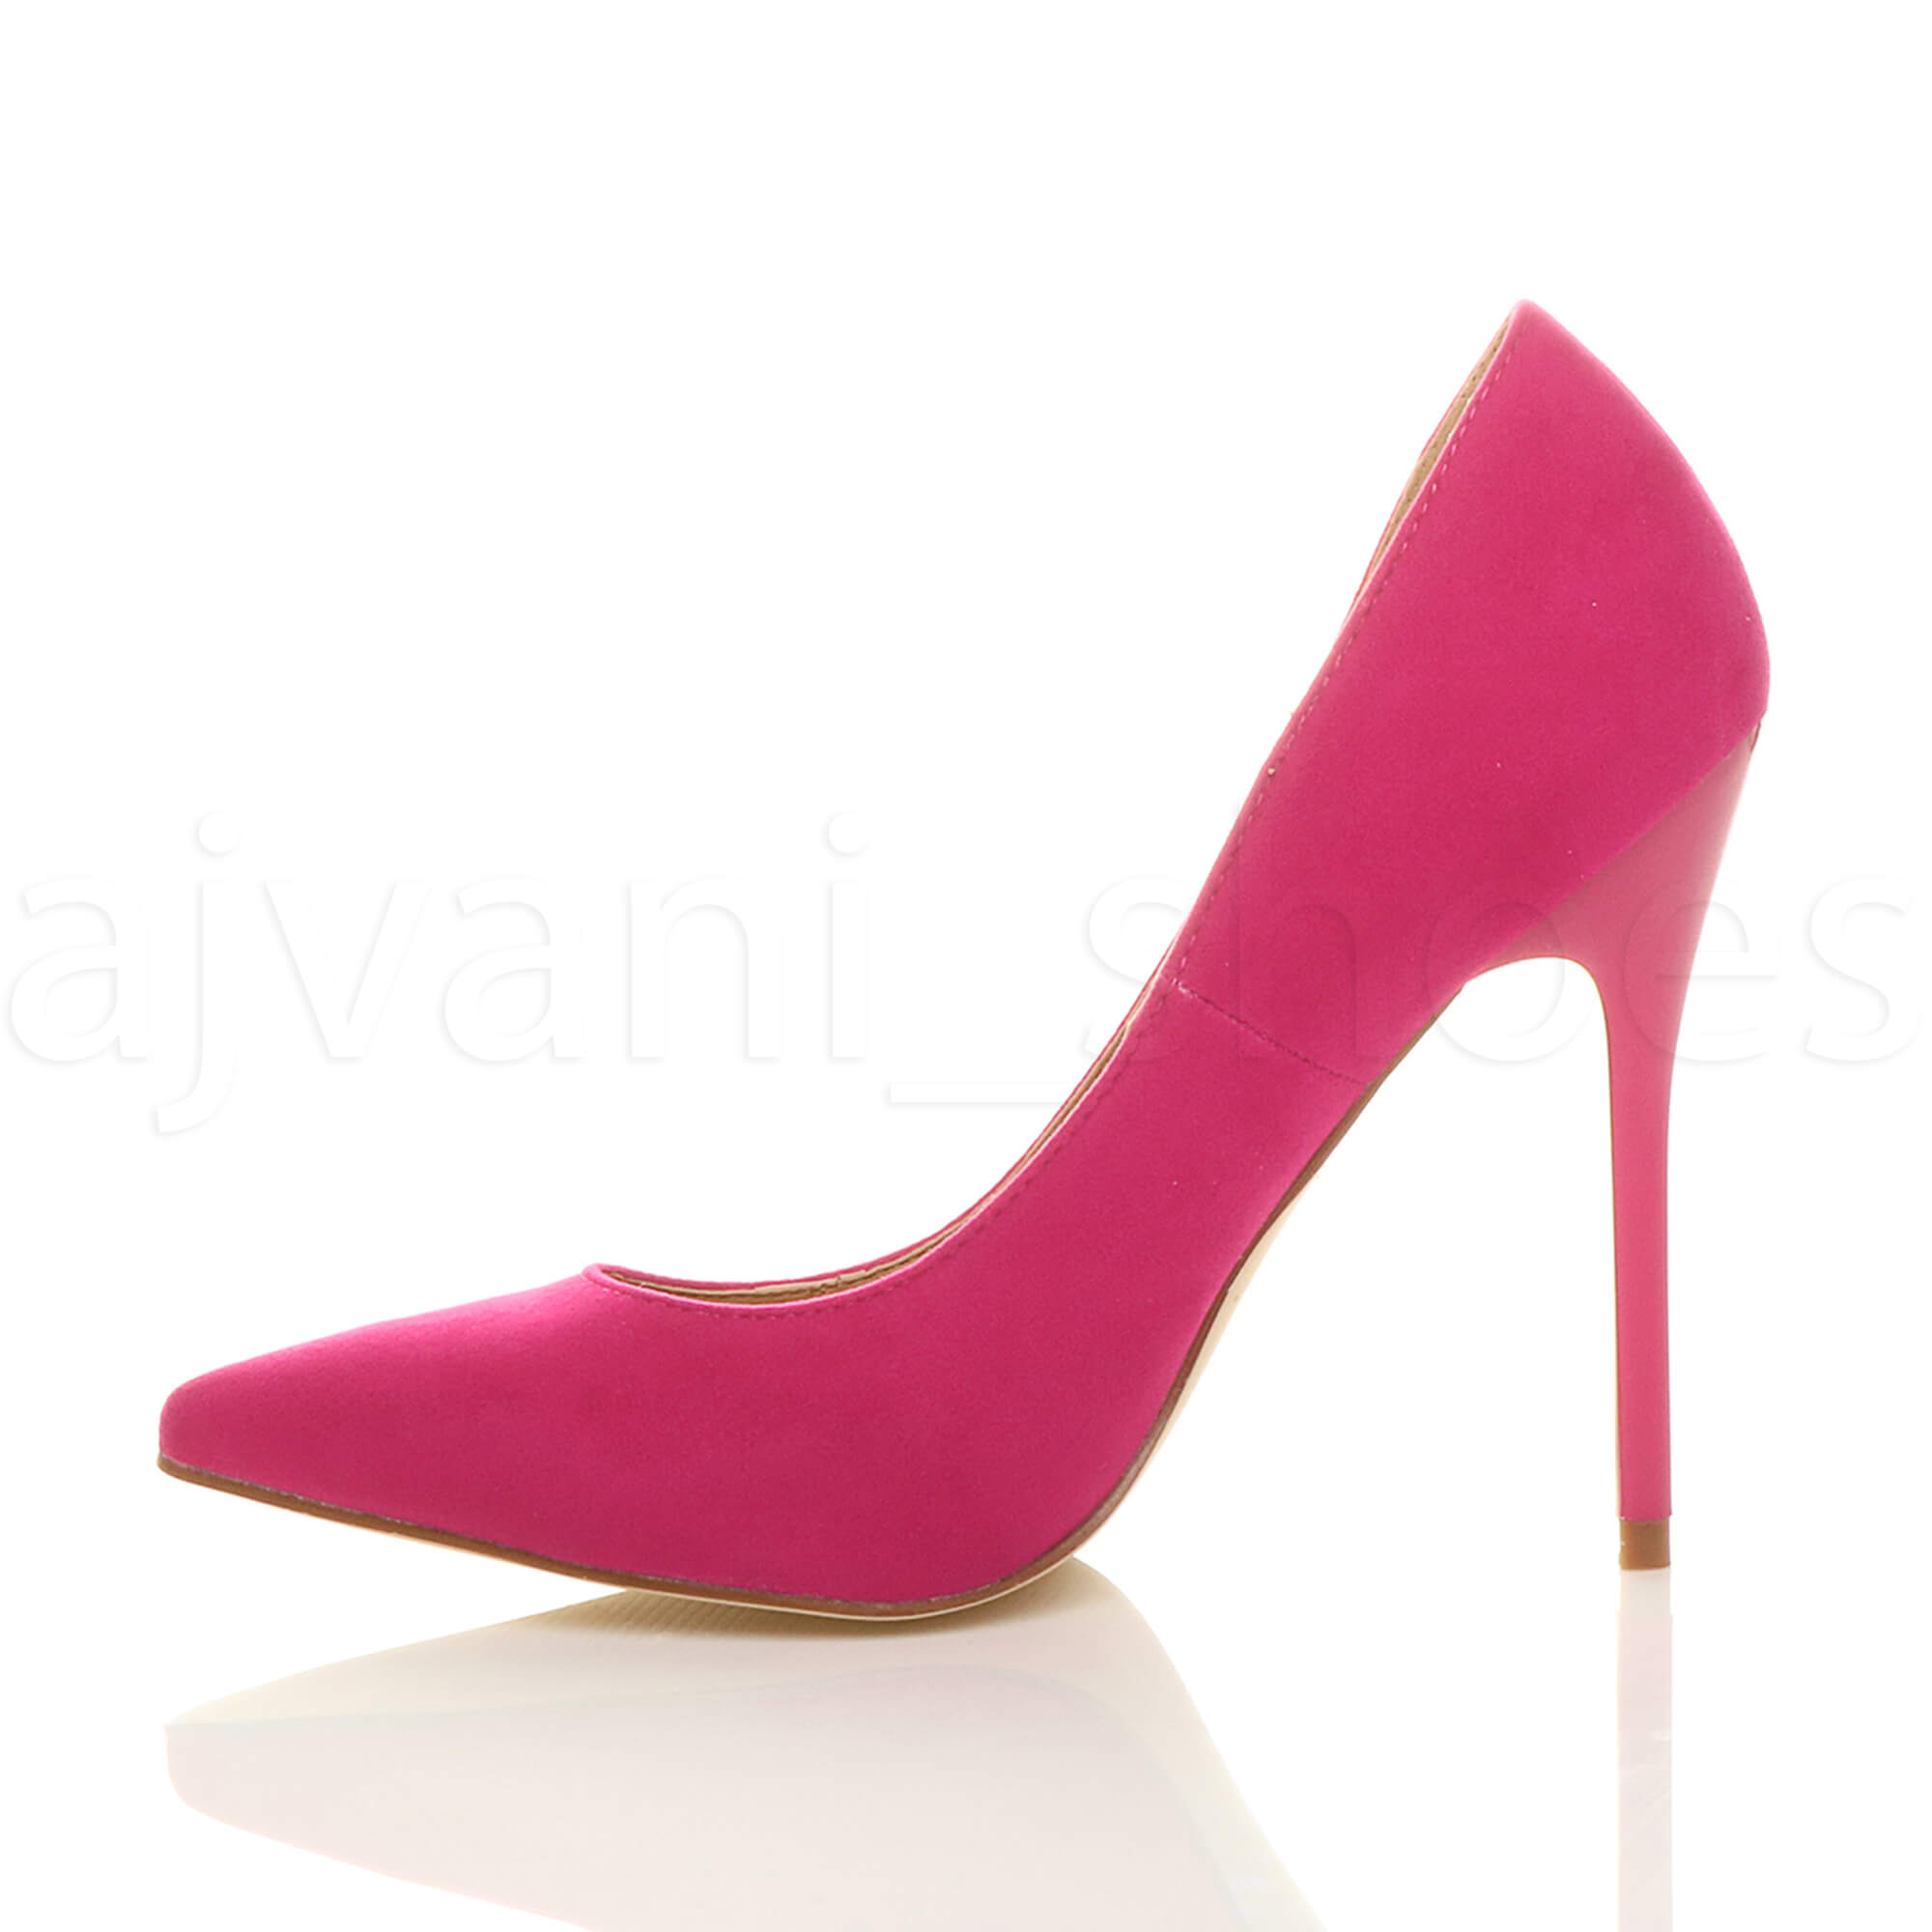 WOMENS-LADIES-HIGH-HEEL-POINTED-CONTRAST-COURT-SMART-PARTY-WORK-SHOES-PUMPS-SIZE thumbnail 82